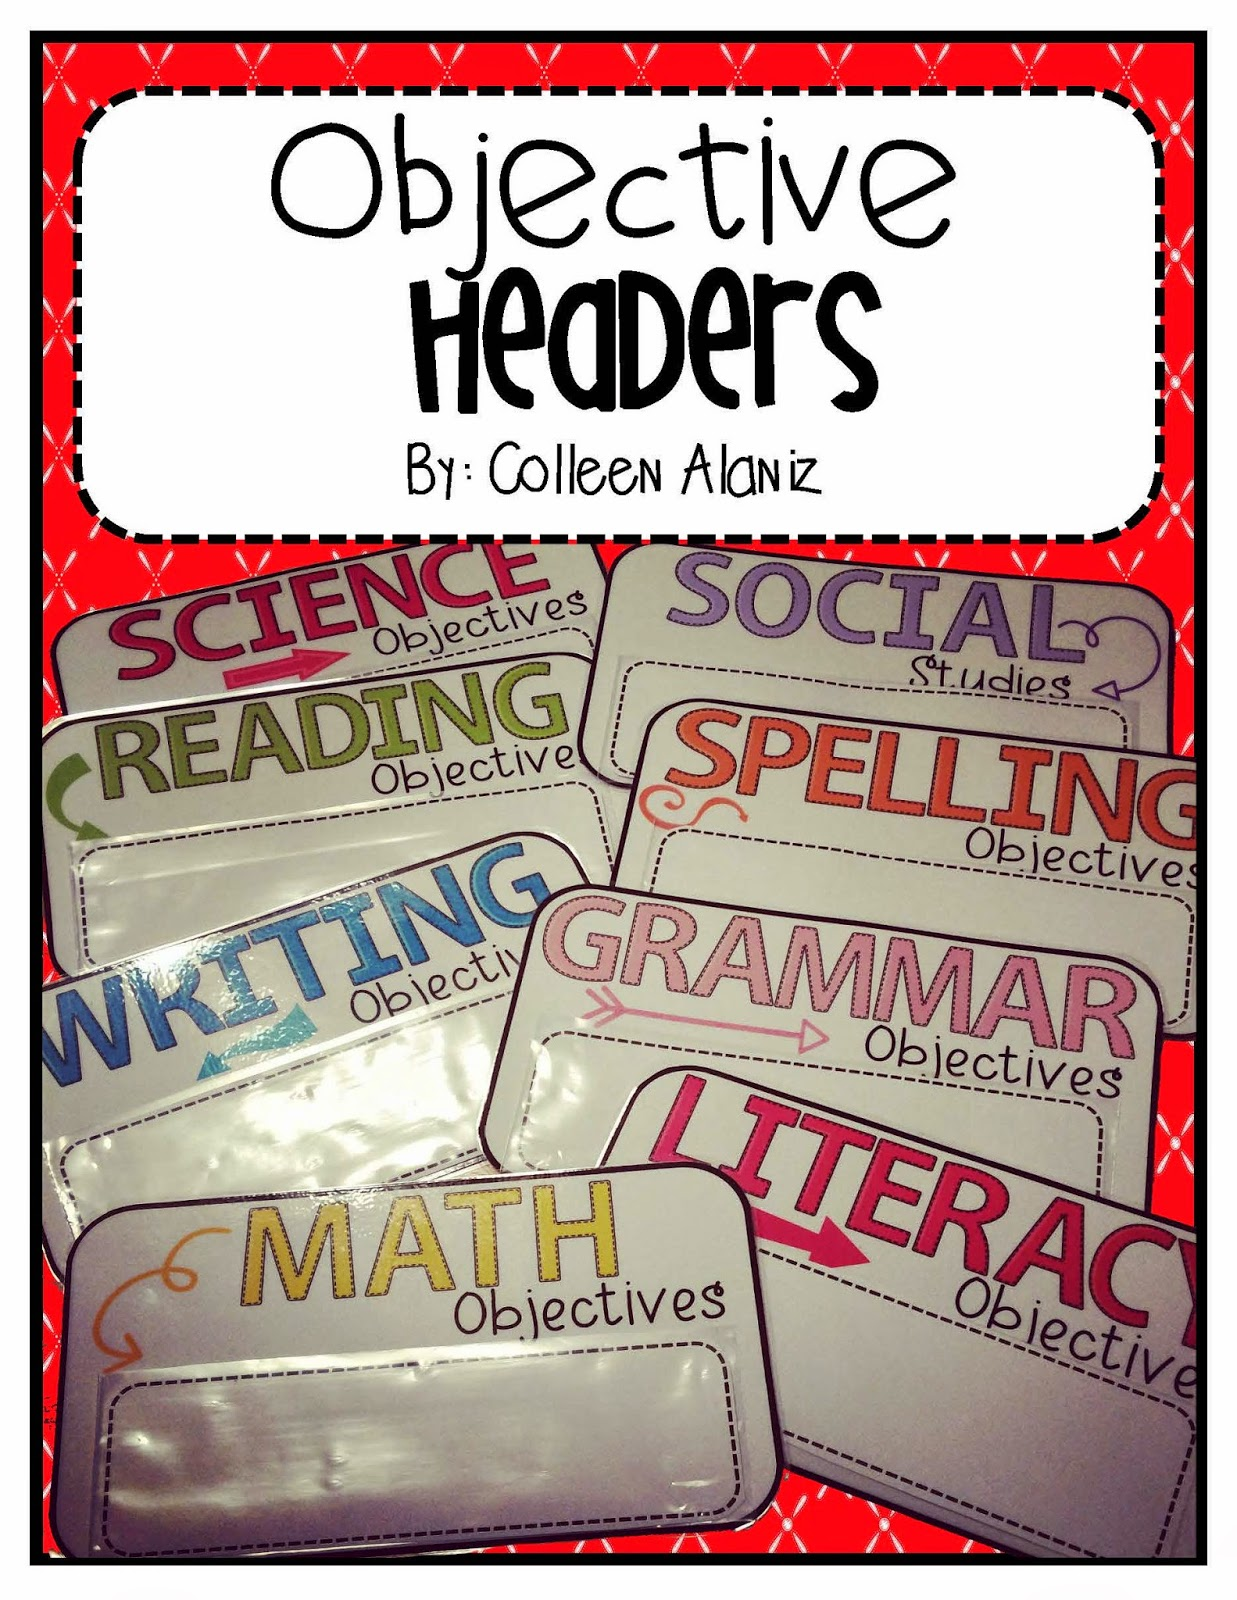 http://www.teacherspayteachers.com/Product/Objective-Headers-Color-Splash-1434125